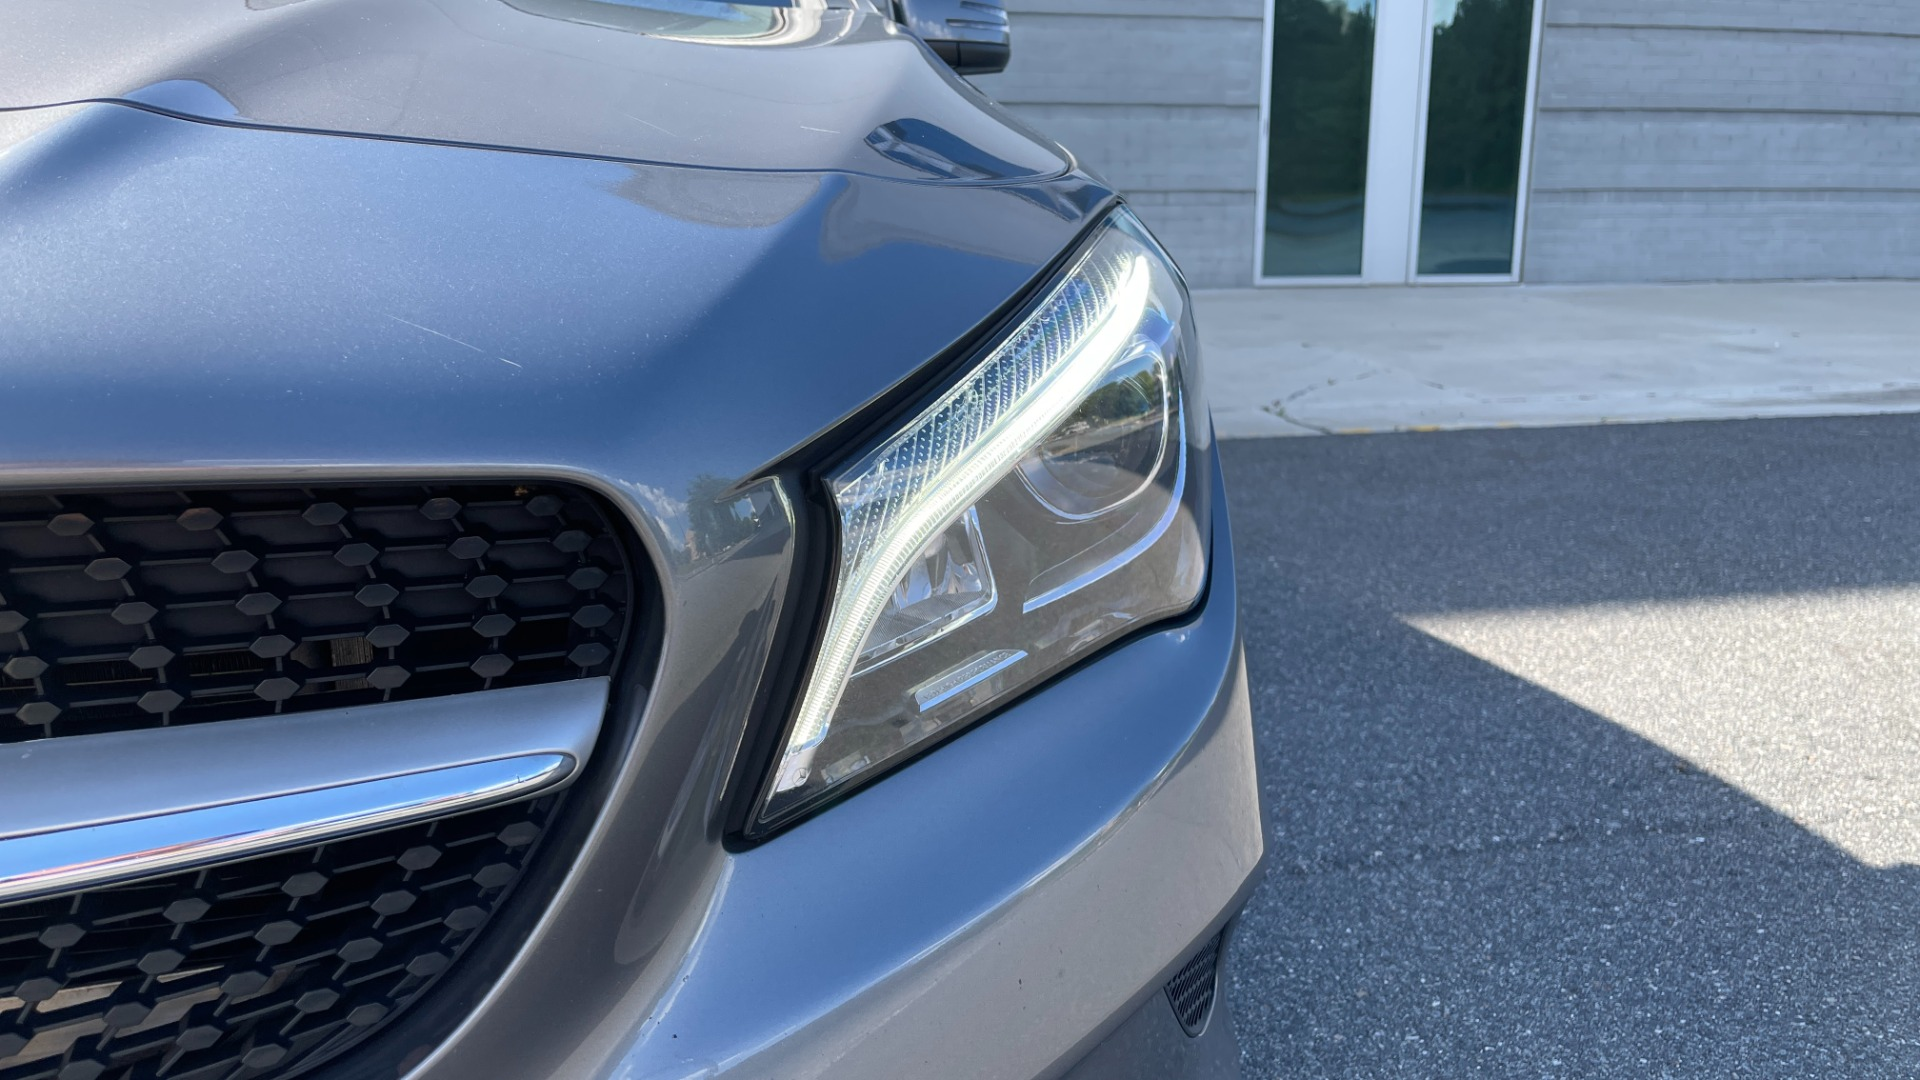 Used 2019 Mercedes-Benz CLA 250 4MATIC PREM & CONV PKG / APPLE / PANO-ROOF / H/K SND / REARVIEW for sale $29,795 at Formula Imports in Charlotte NC 28227 15